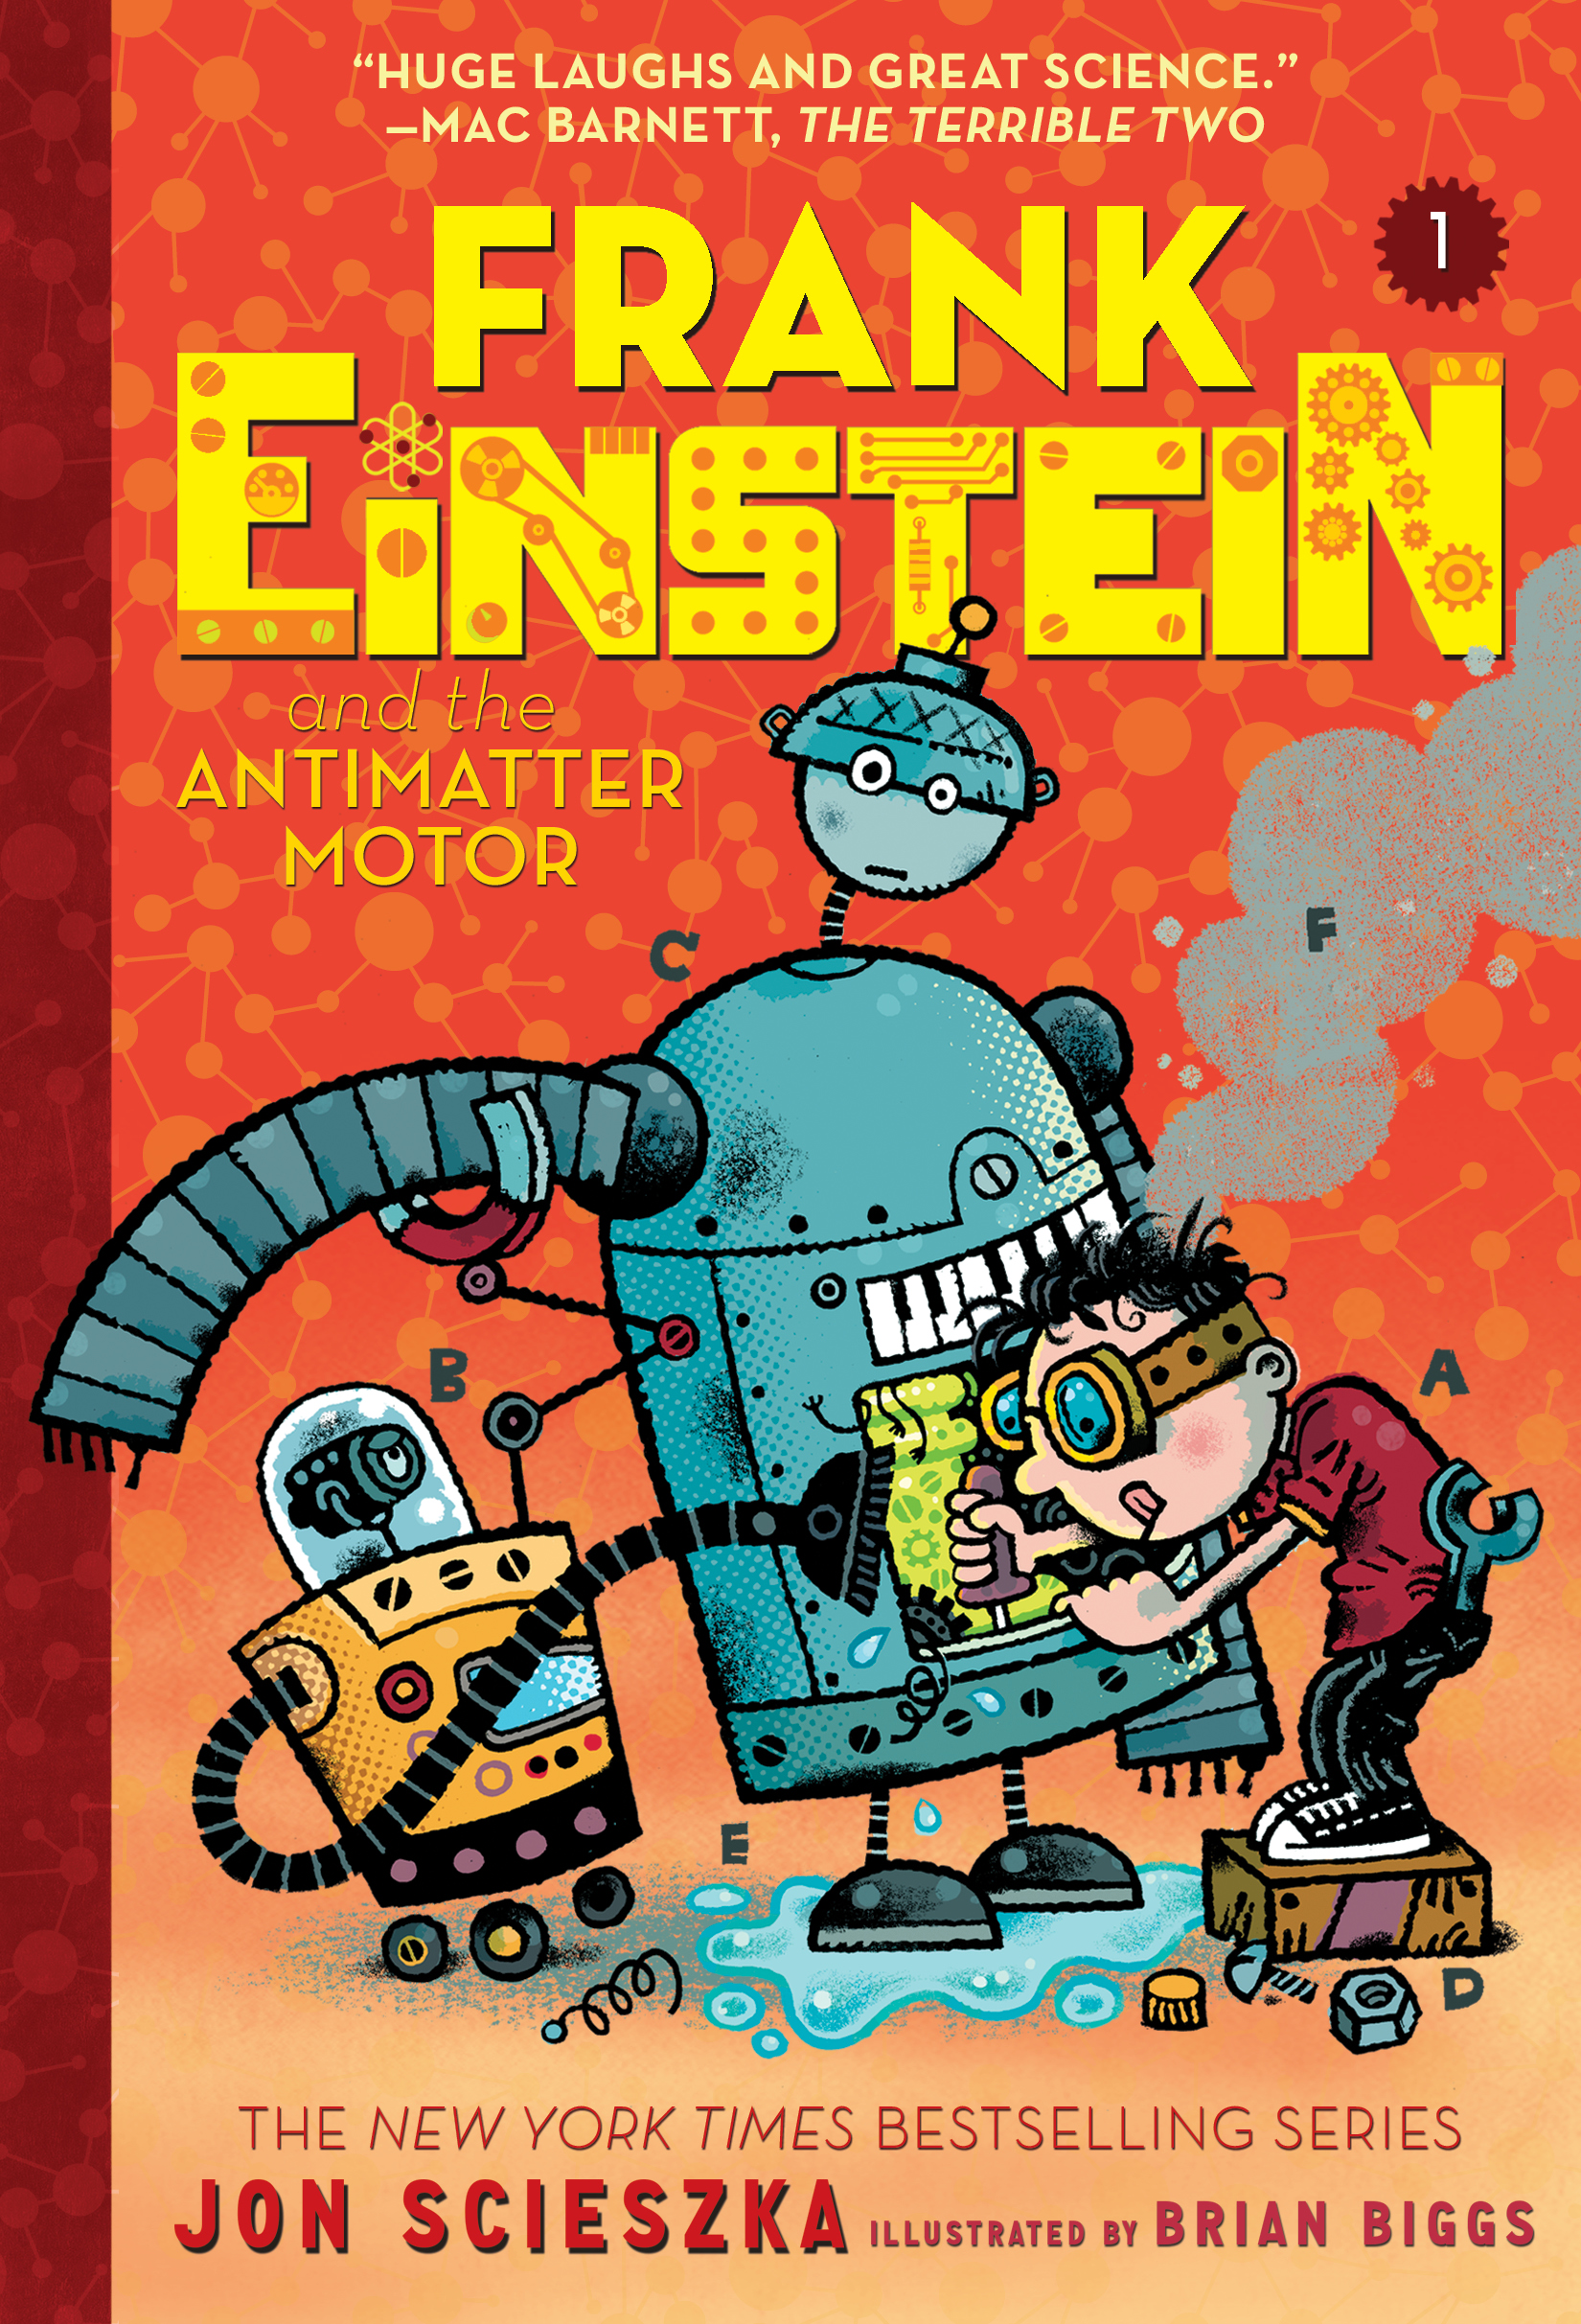 Frank Einstein and the Antimatter Motor (Frank Einstein series #1) [electronic resource] : Book One